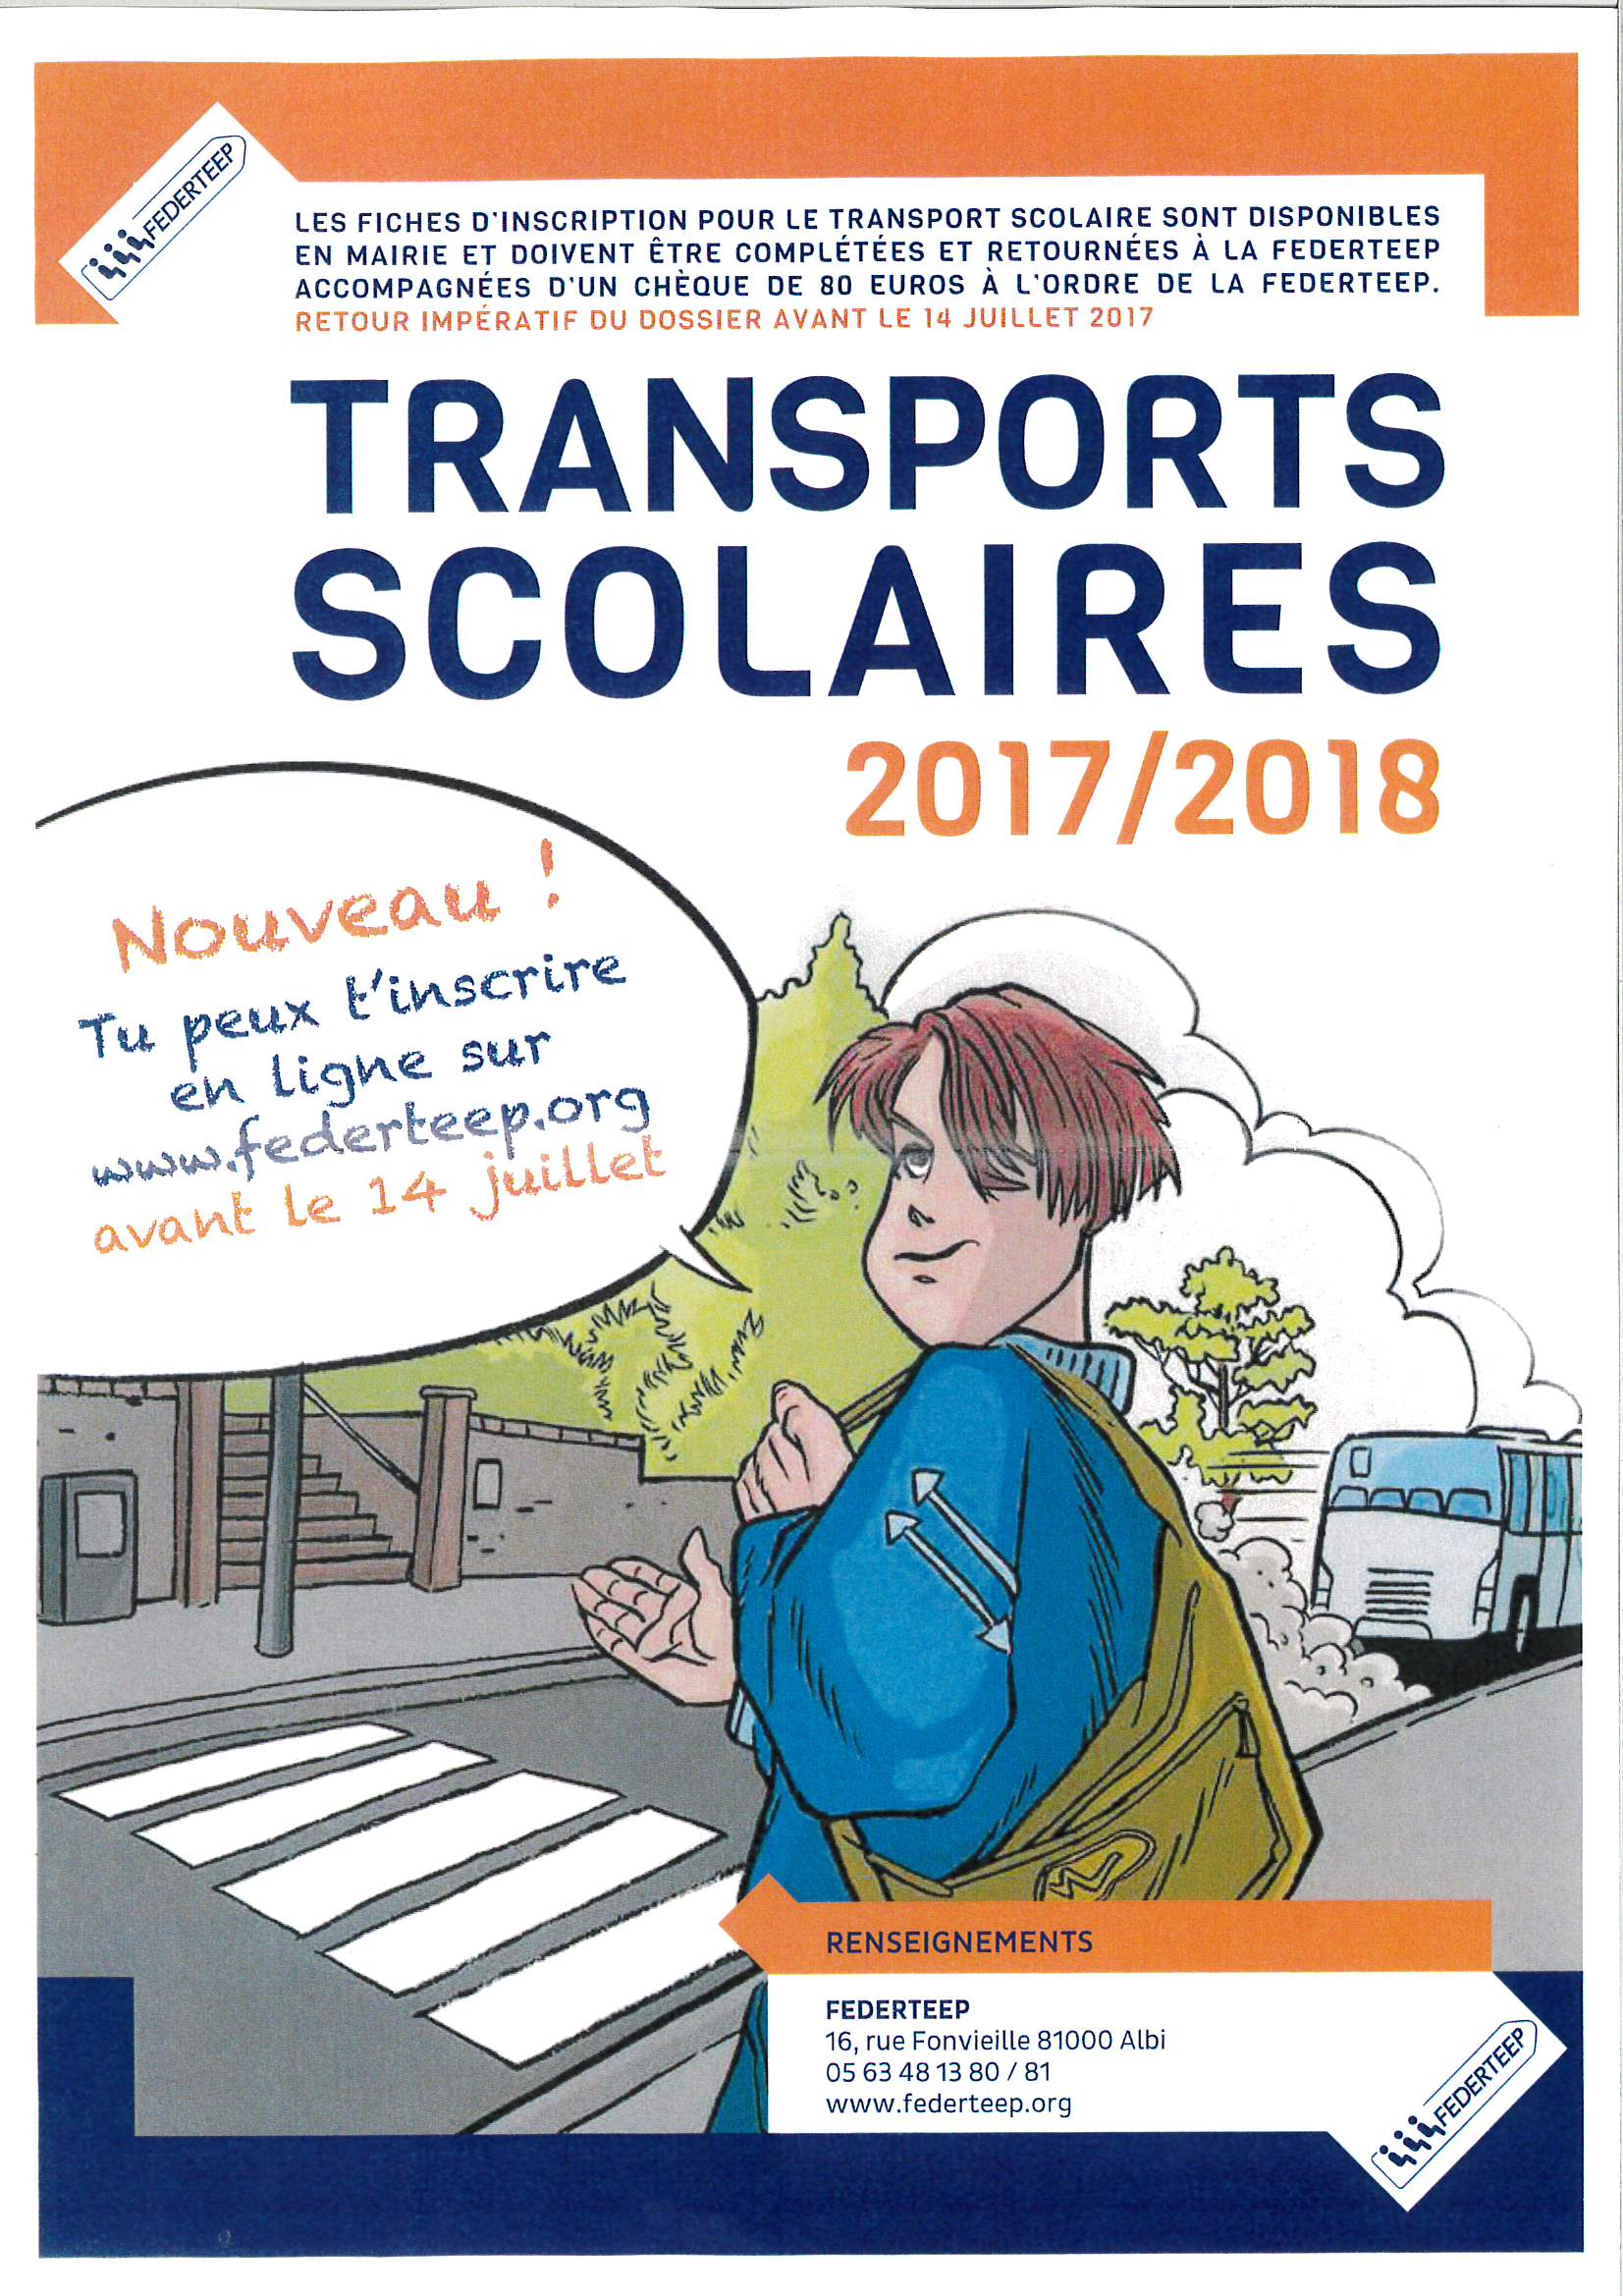 Transports scolaires inscriptions 2017/2018